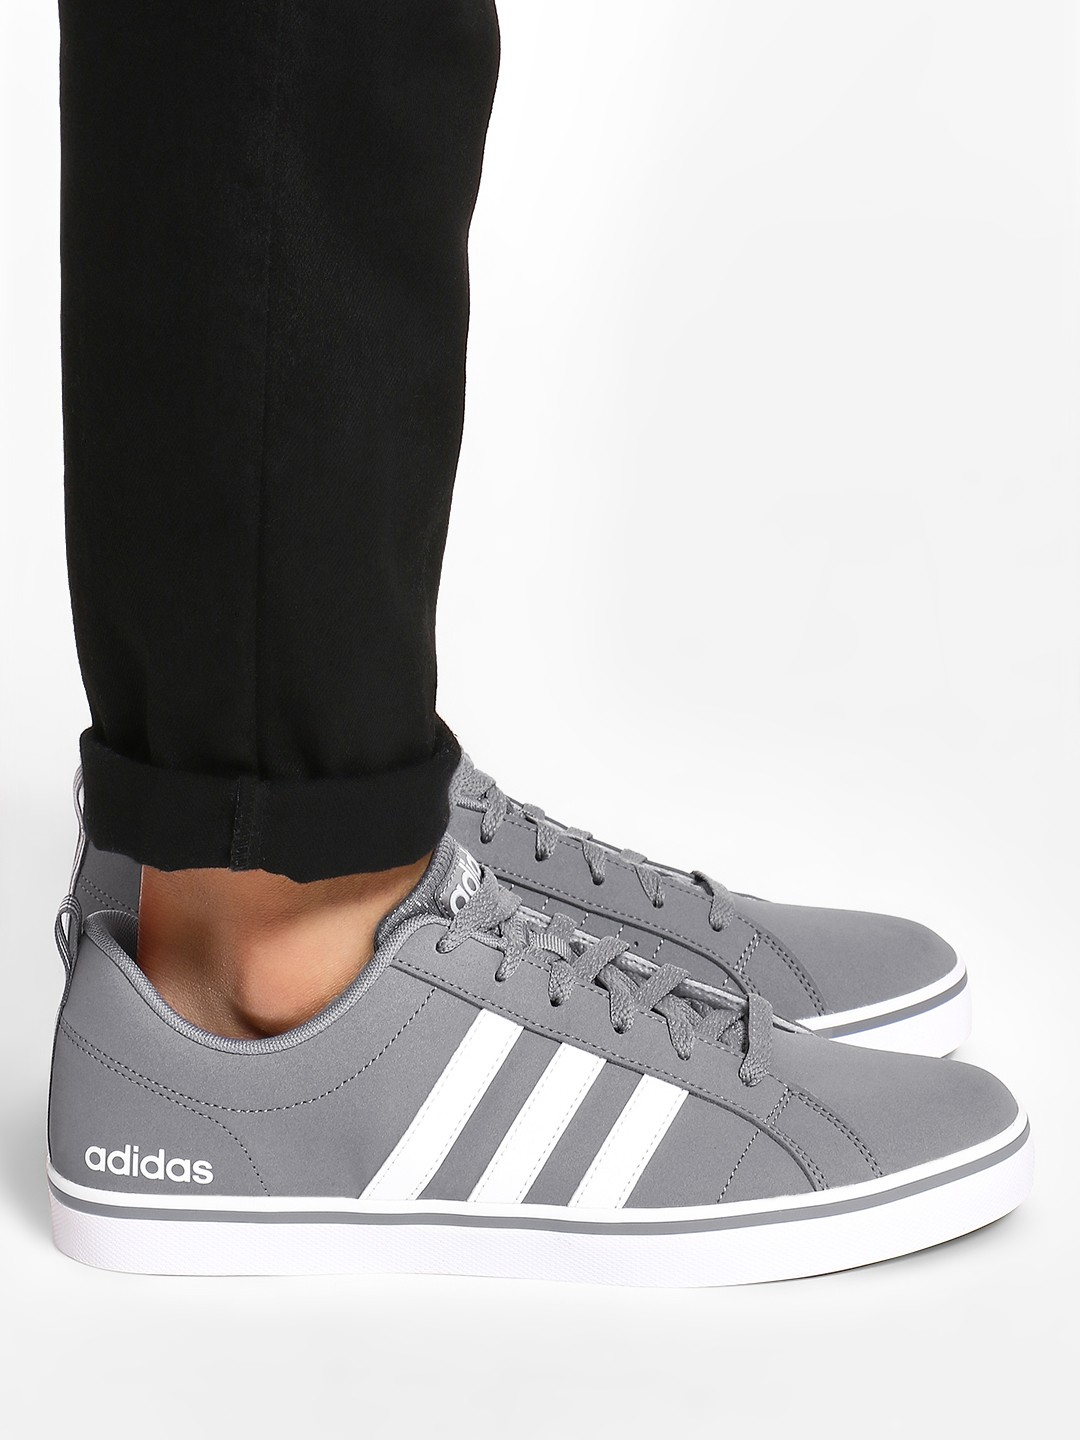 Buy Adidas Grey VS Pace Shoes for Men Online in India